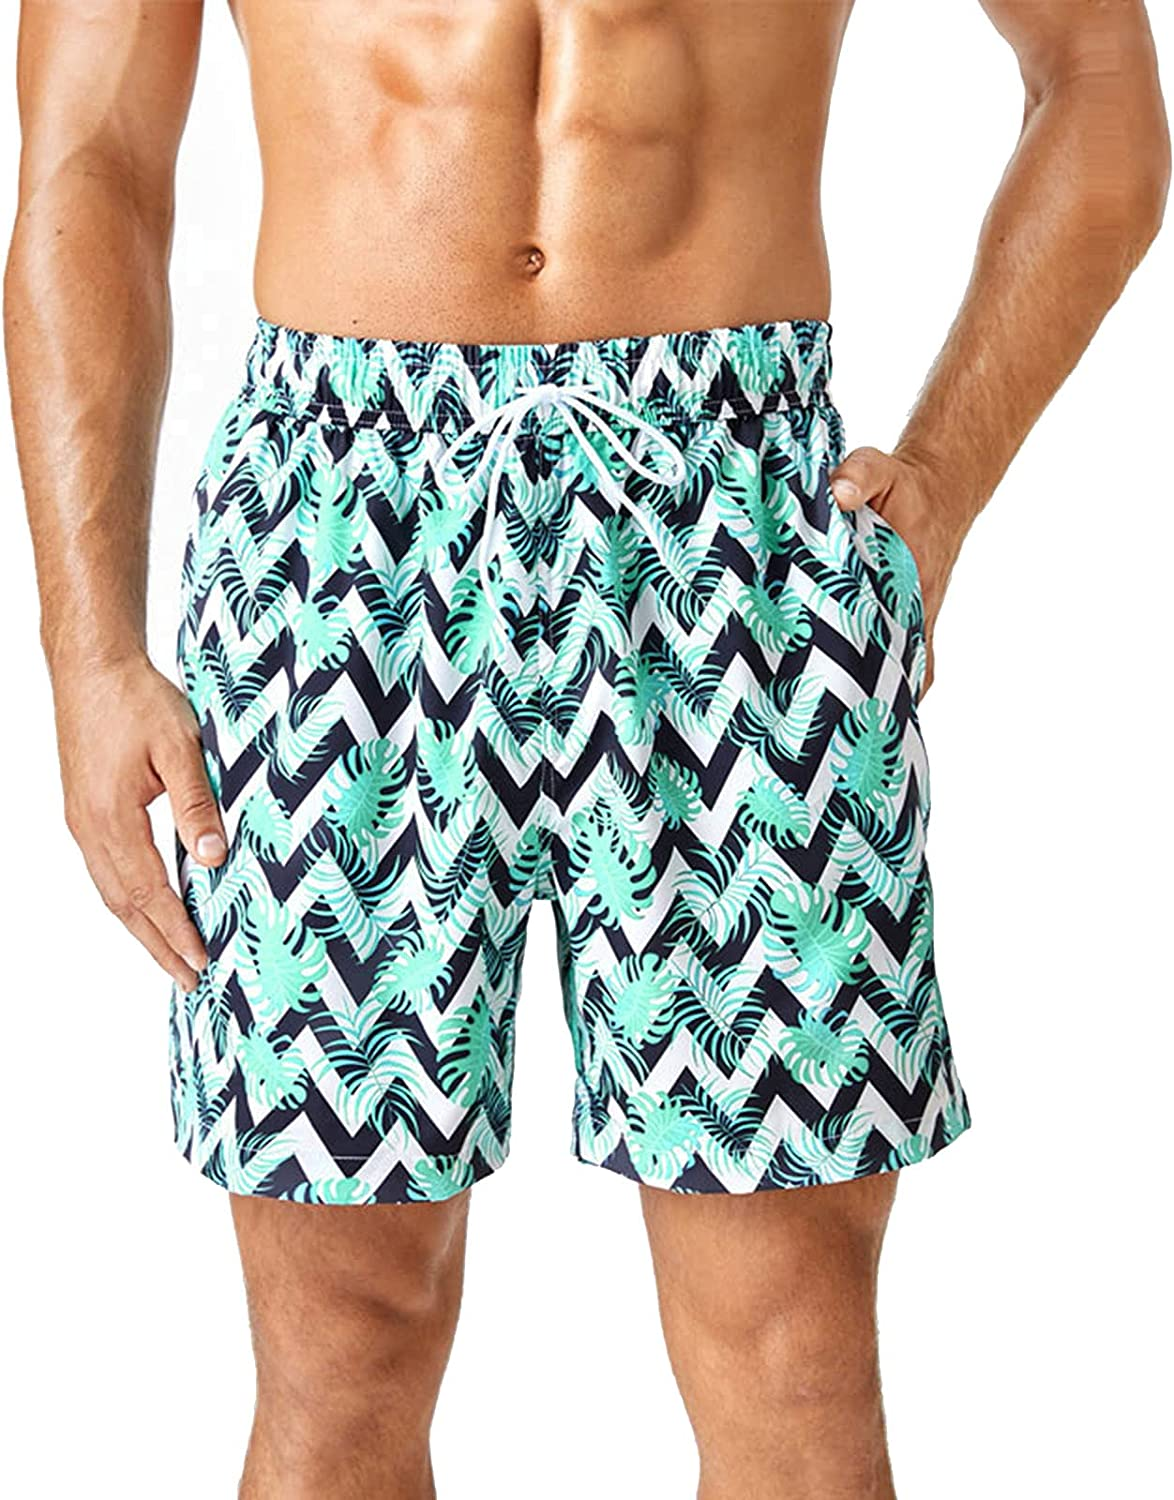 HTHJSCO Men's Beach Shorts Summer Printing Slim Fit Quick Dry Swim Shorts Mens Bathing Suits Surfing Swimming Pants